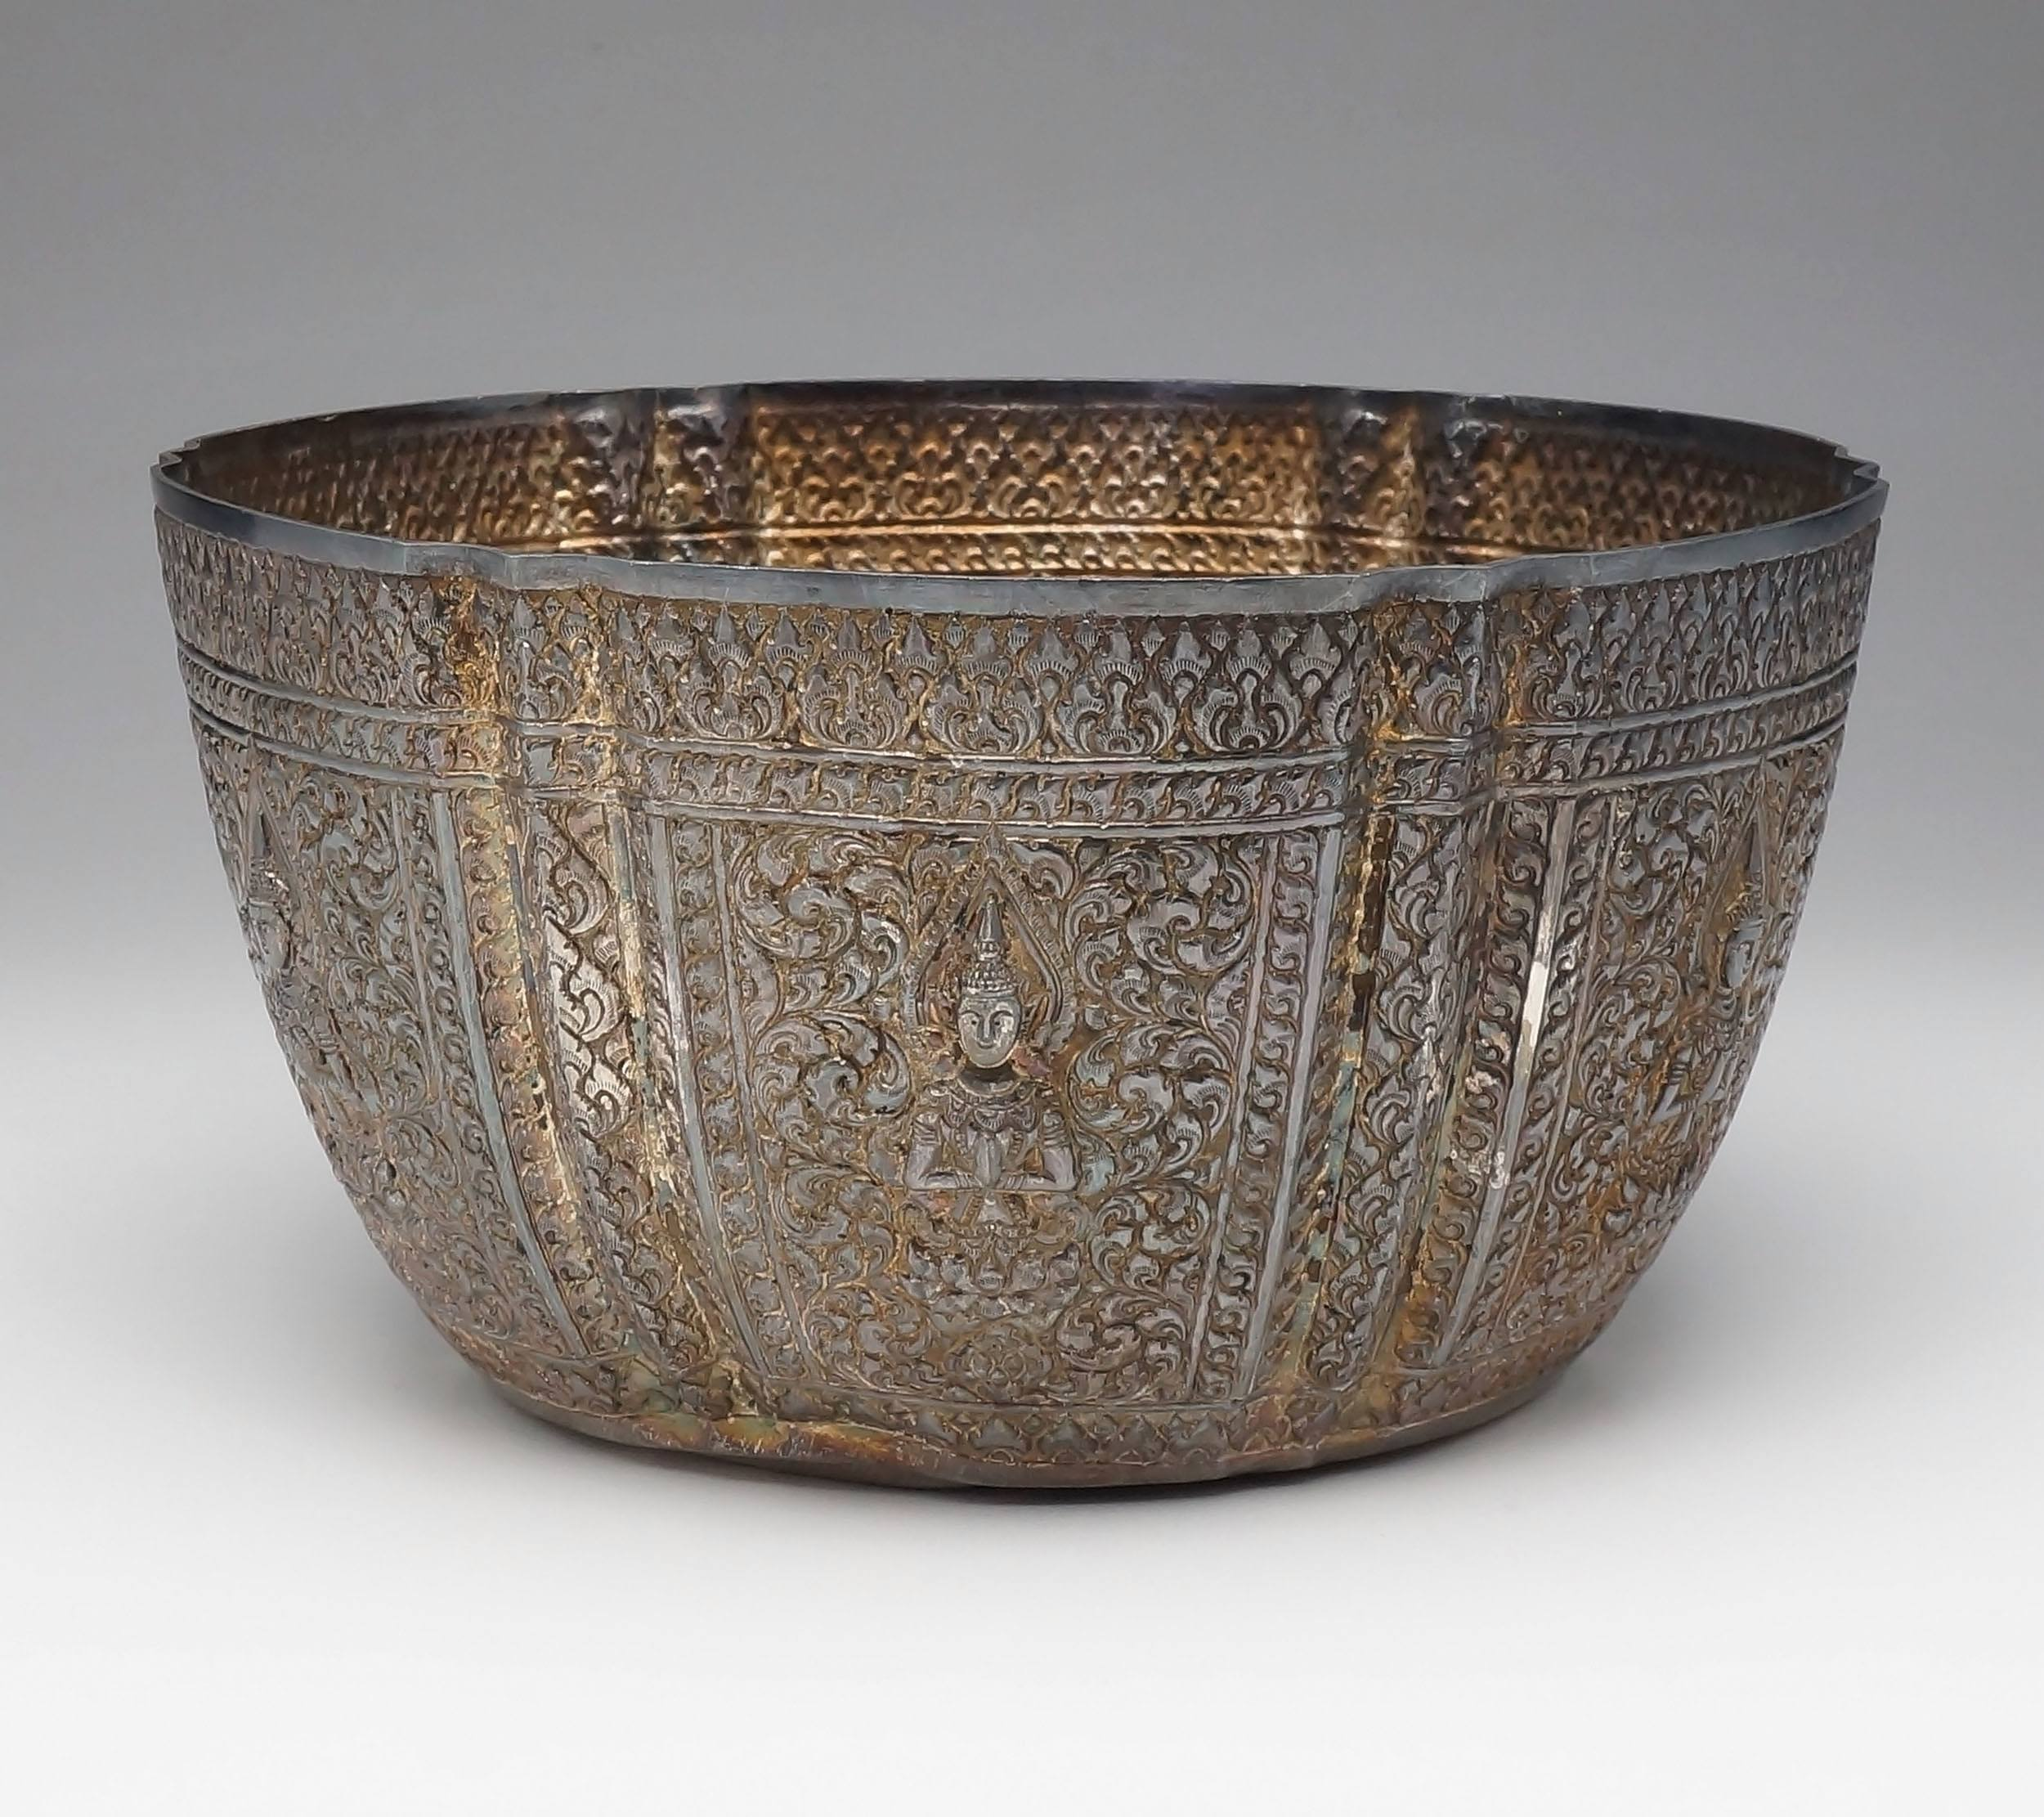 'Lao Silver Repousse Rose Bowl Decorated with Six Praying Thepphanom Figures Seated on Lotus Flowers Surrounded by Scrollwork'